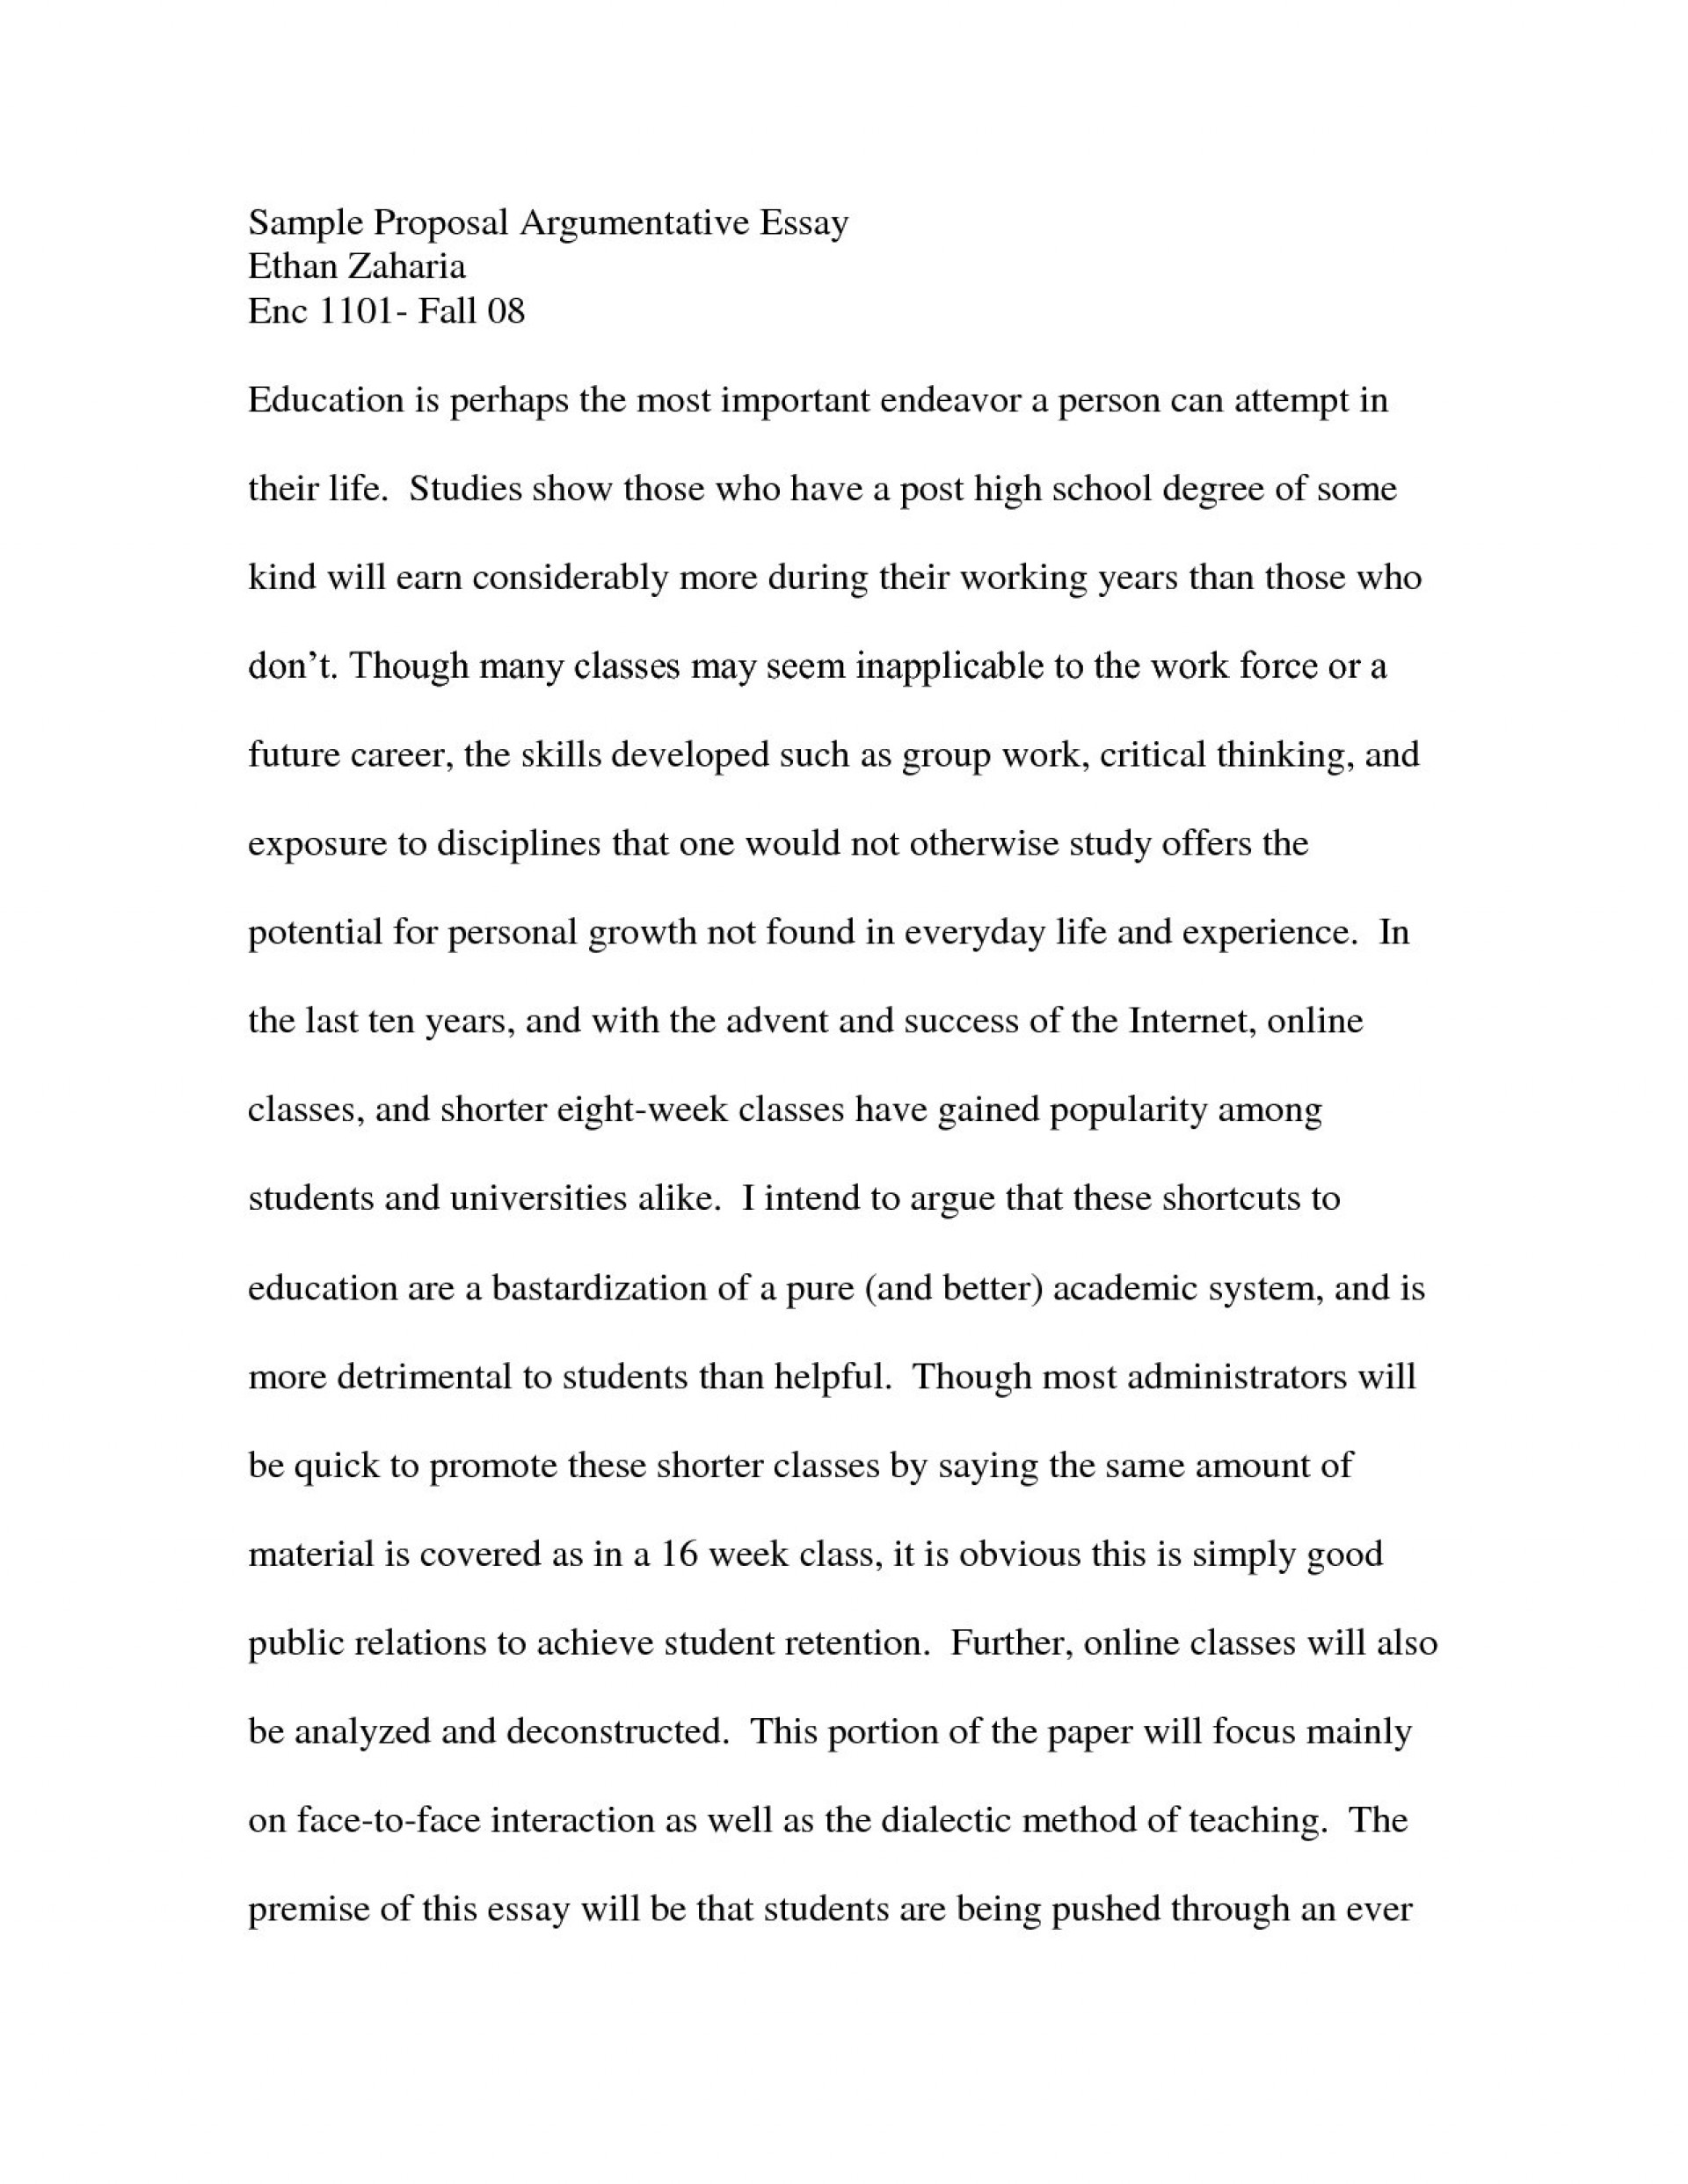 008 Solar System Homework Lampa How To Write Good Persuasive Essay For College Definition Education Psychology Edu Sample Argumentative High S Successful Conclusion Tips On Staar Introduction Frightening Example School Short Pdf 1920